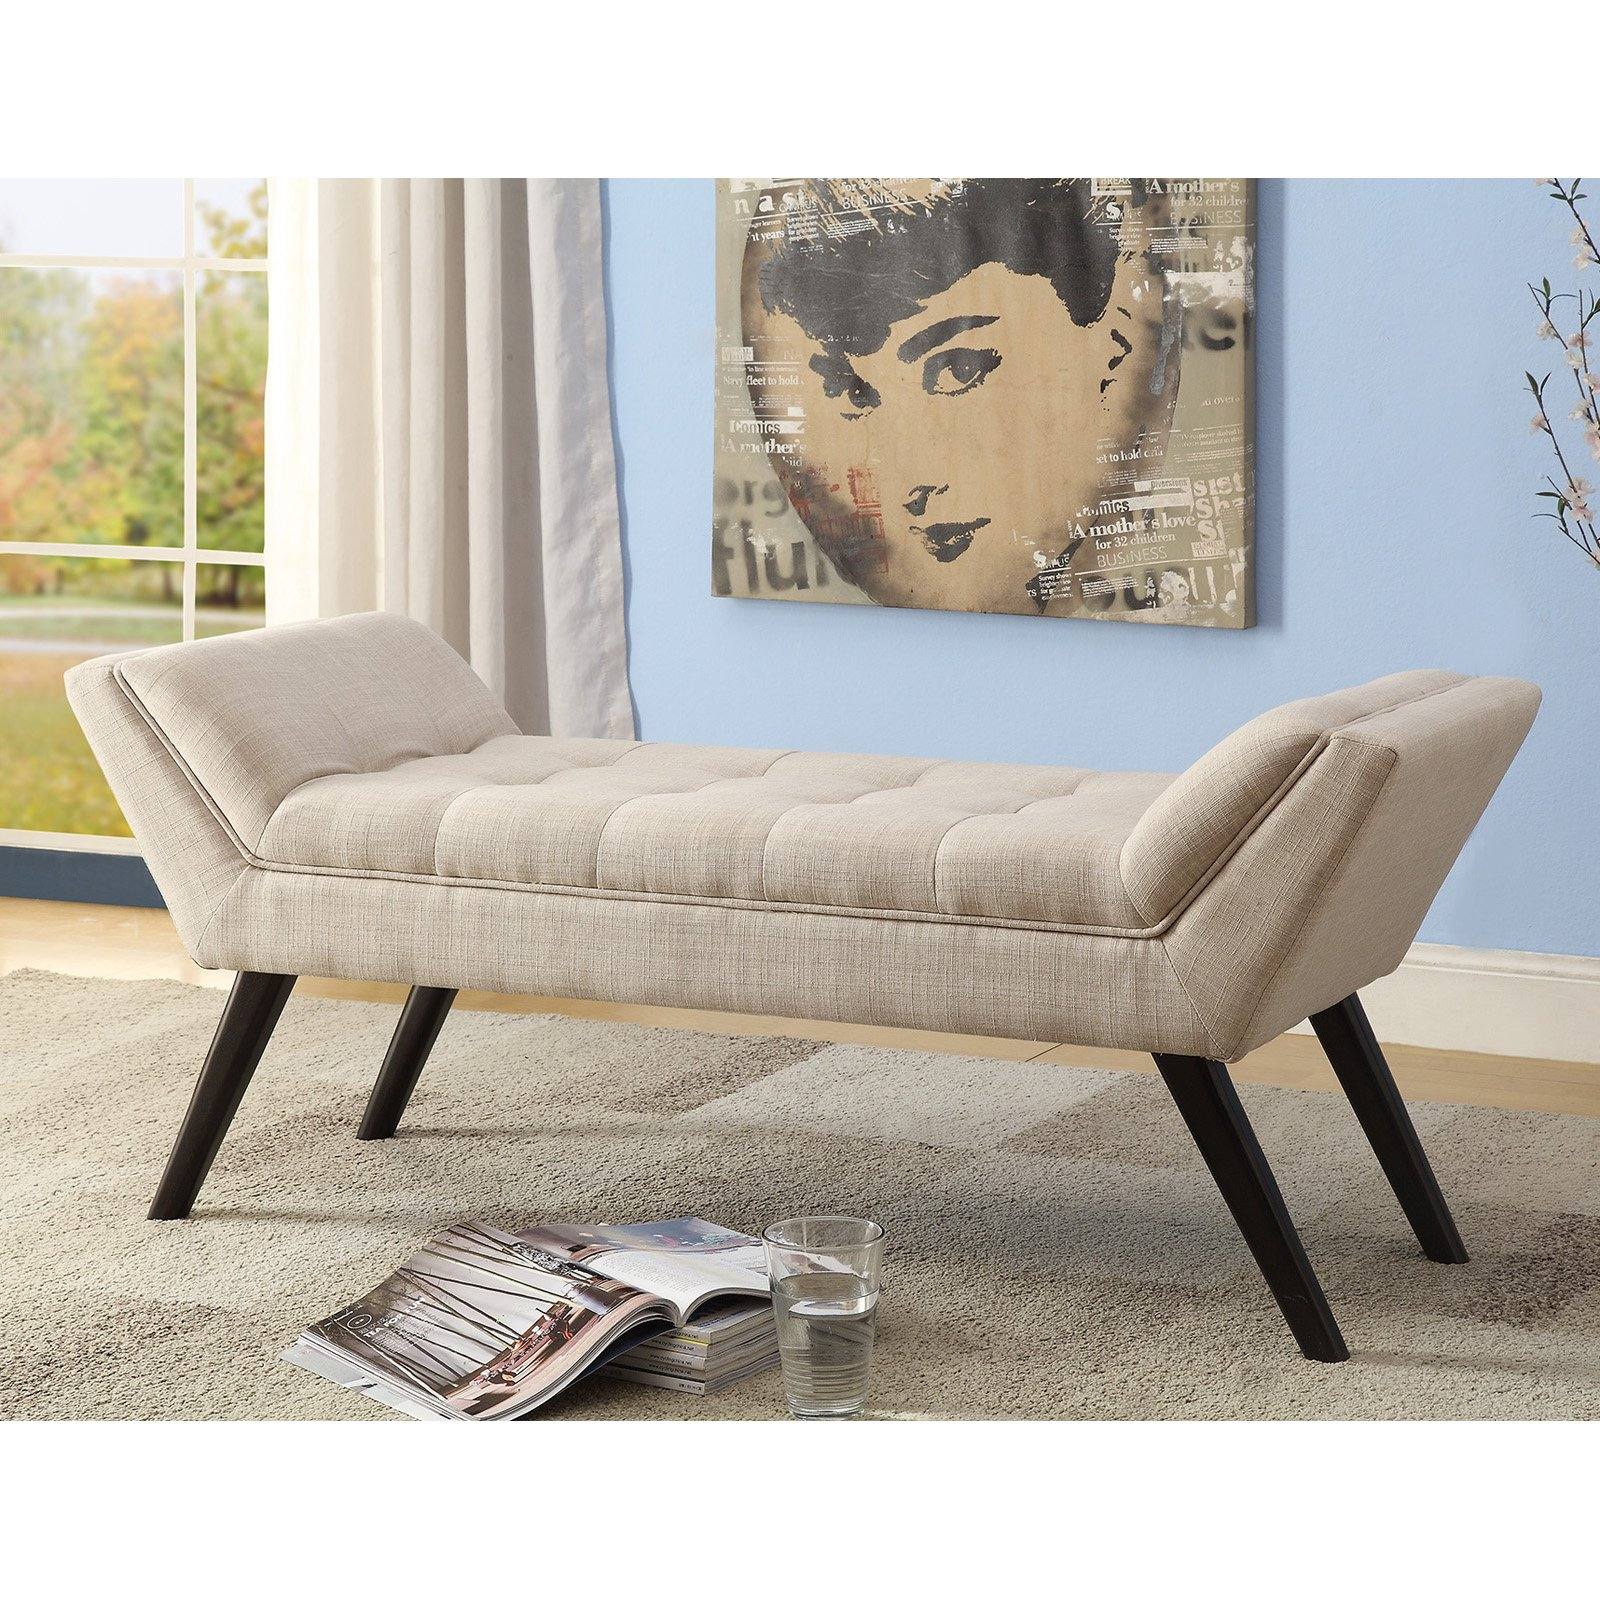 "Baxton Studio Tamblin Beige Linen Fabric Upholstered 50"" Bench"